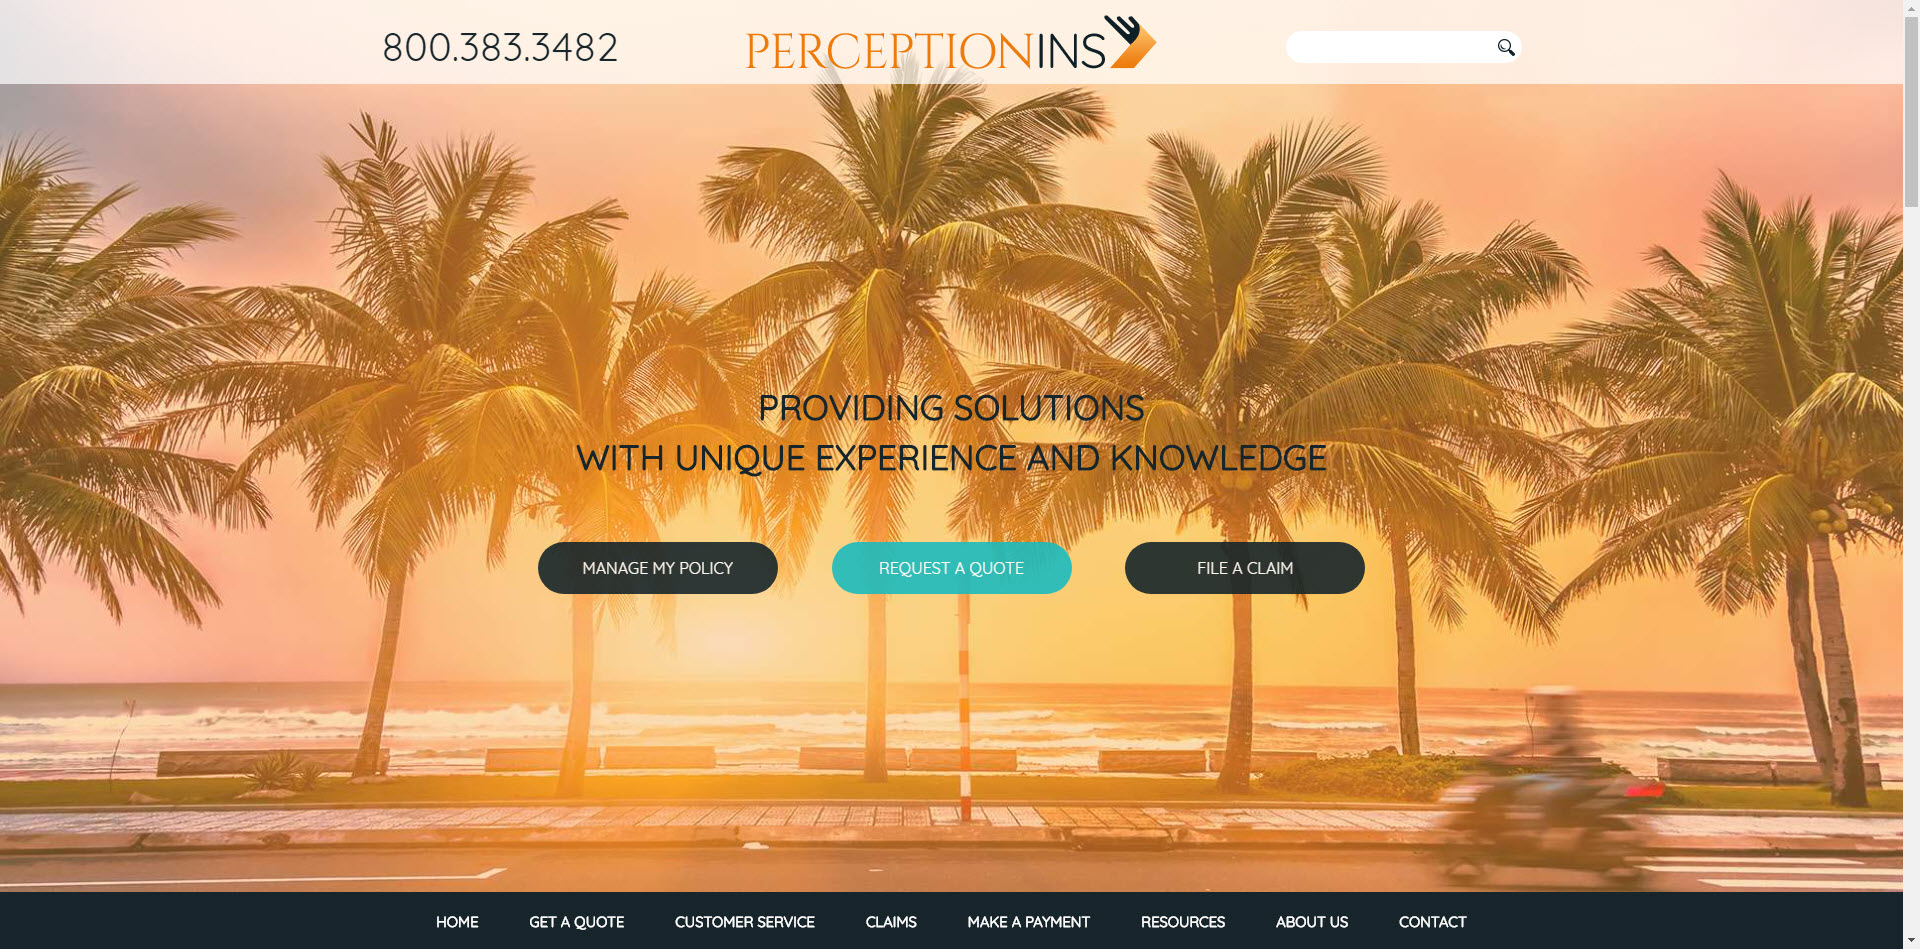 Perception Insurance